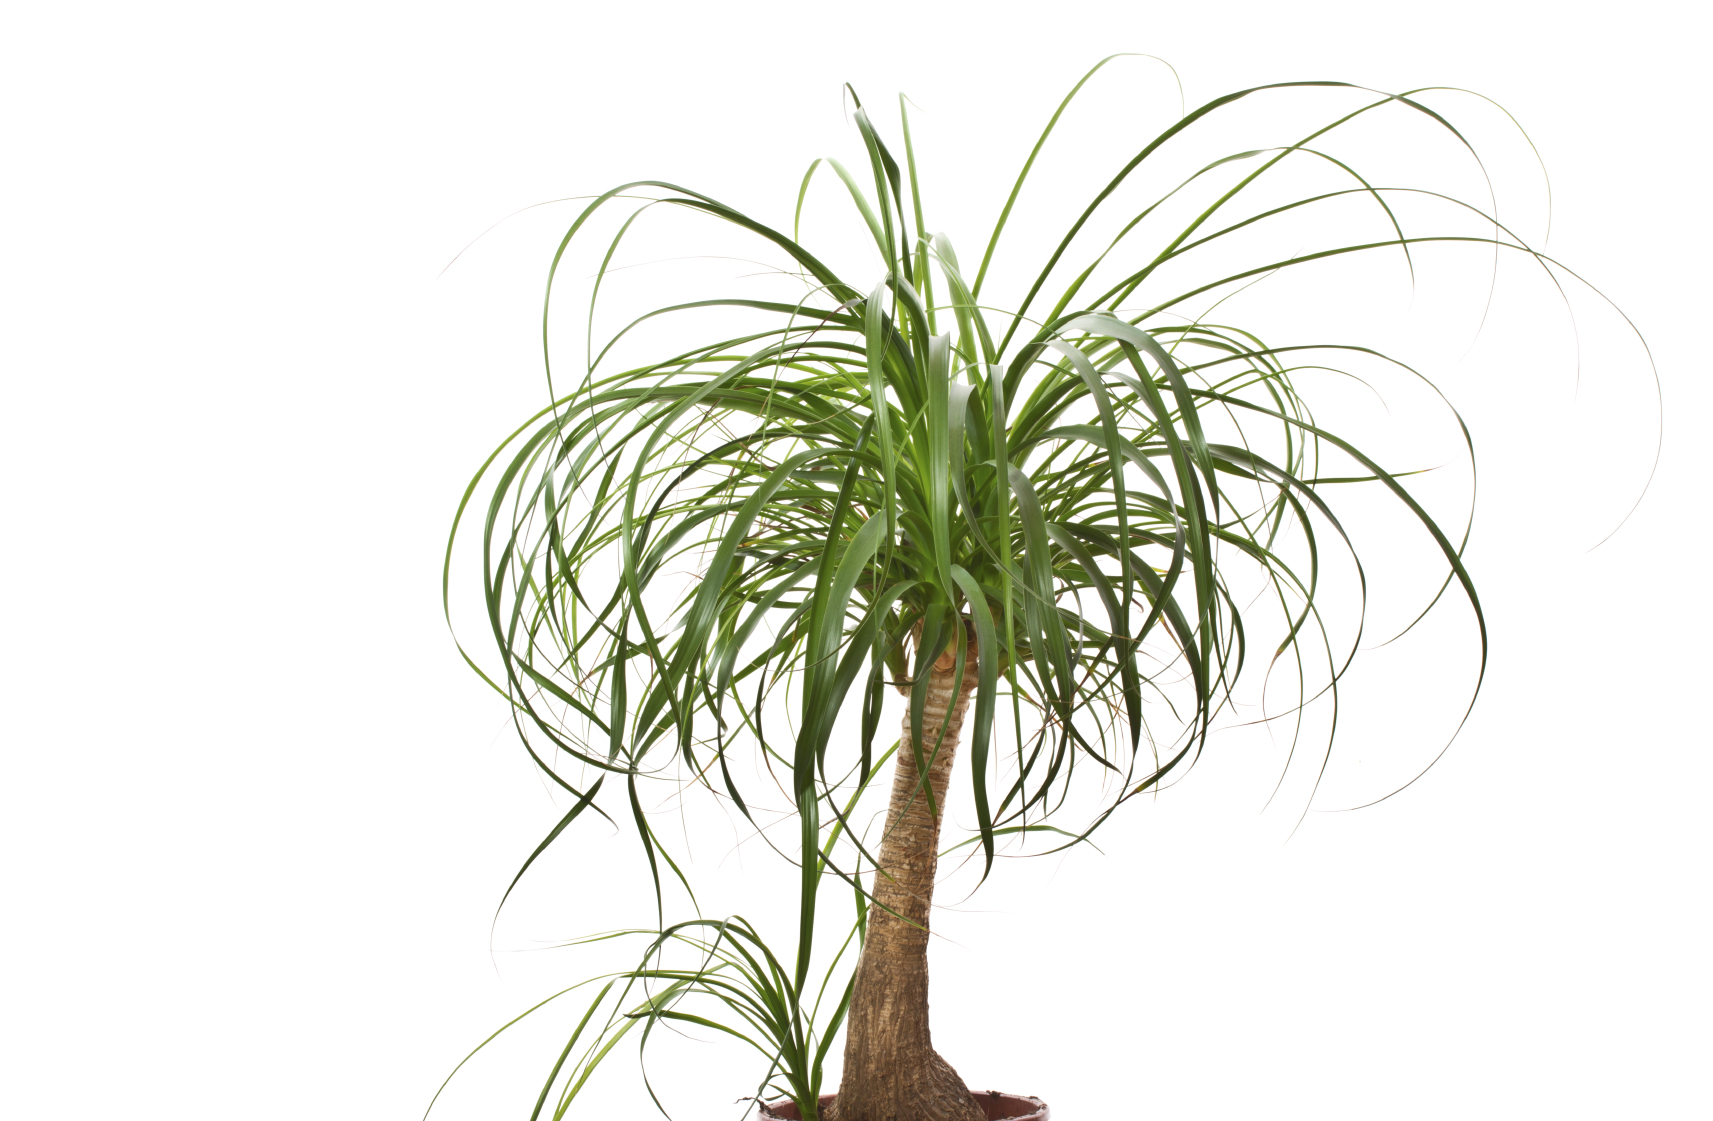 Providing Tree And Plant Care: How To Prune A Ponytail Palm